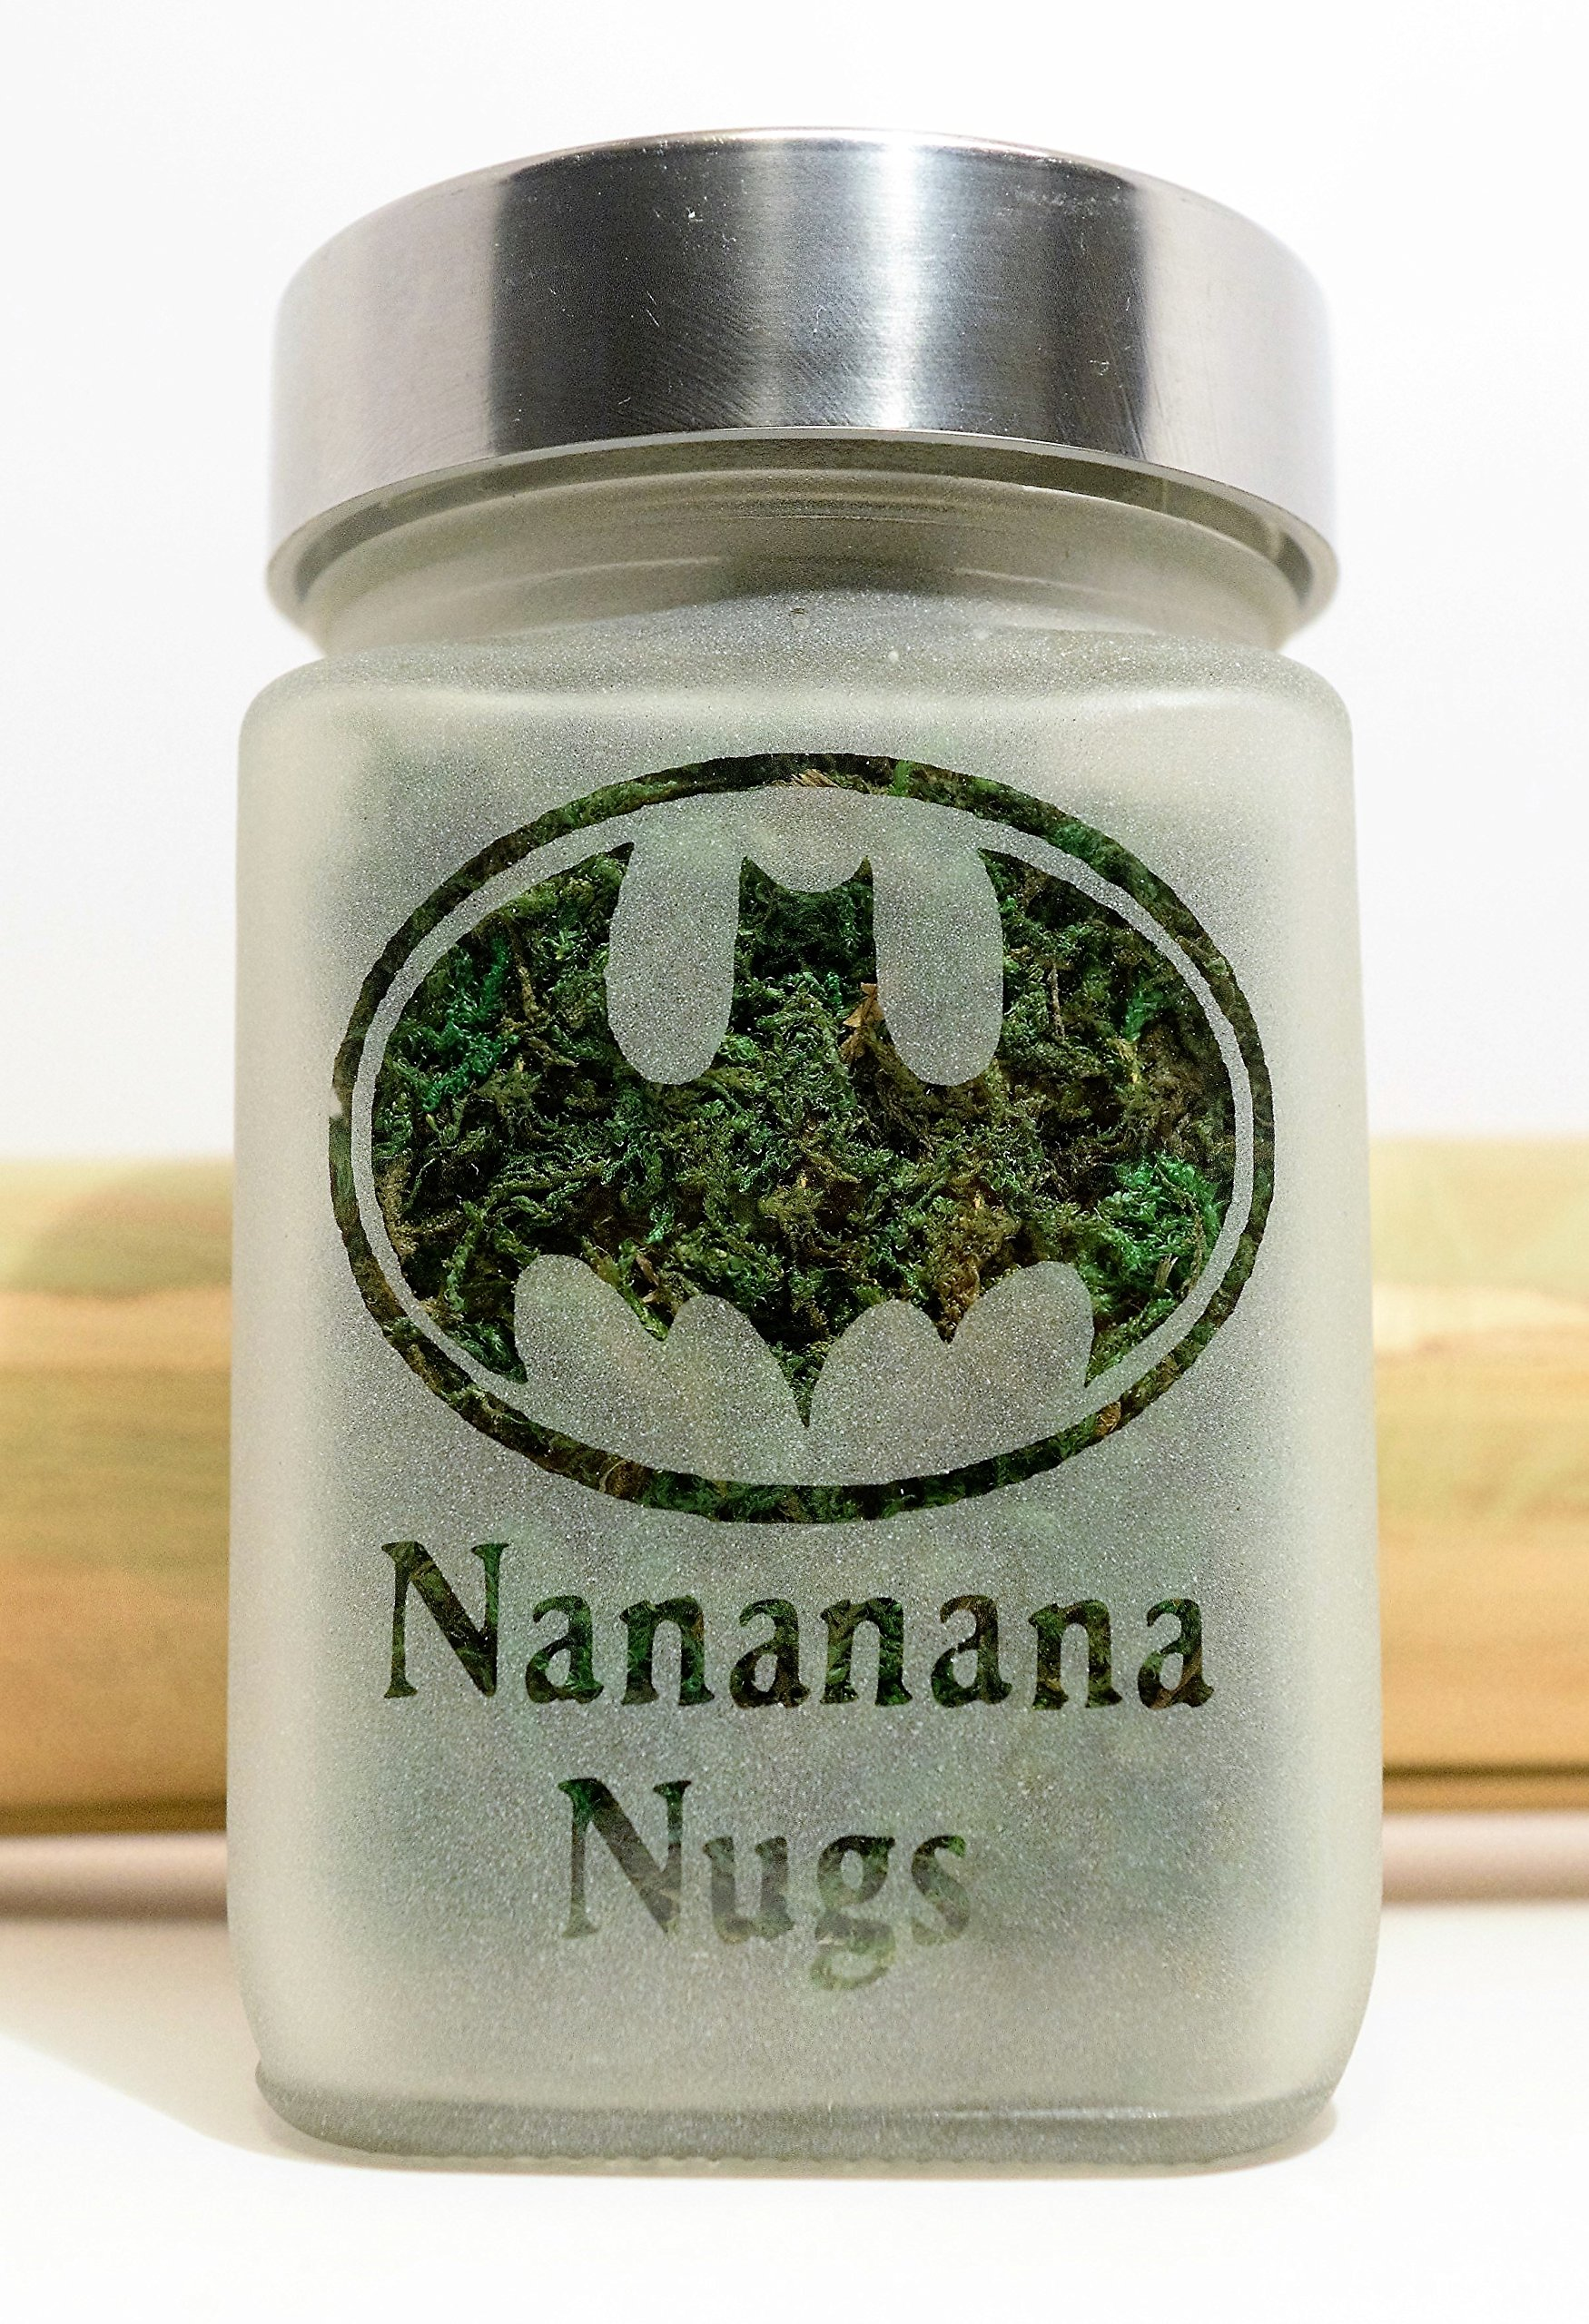 Retro Batman Stash Jar | Nananana Nugs Weed Jar and Weed Accessories | Stoner Gifts, Stash Jars & Stoner Accessories by Twisted420Glass (Image #4)